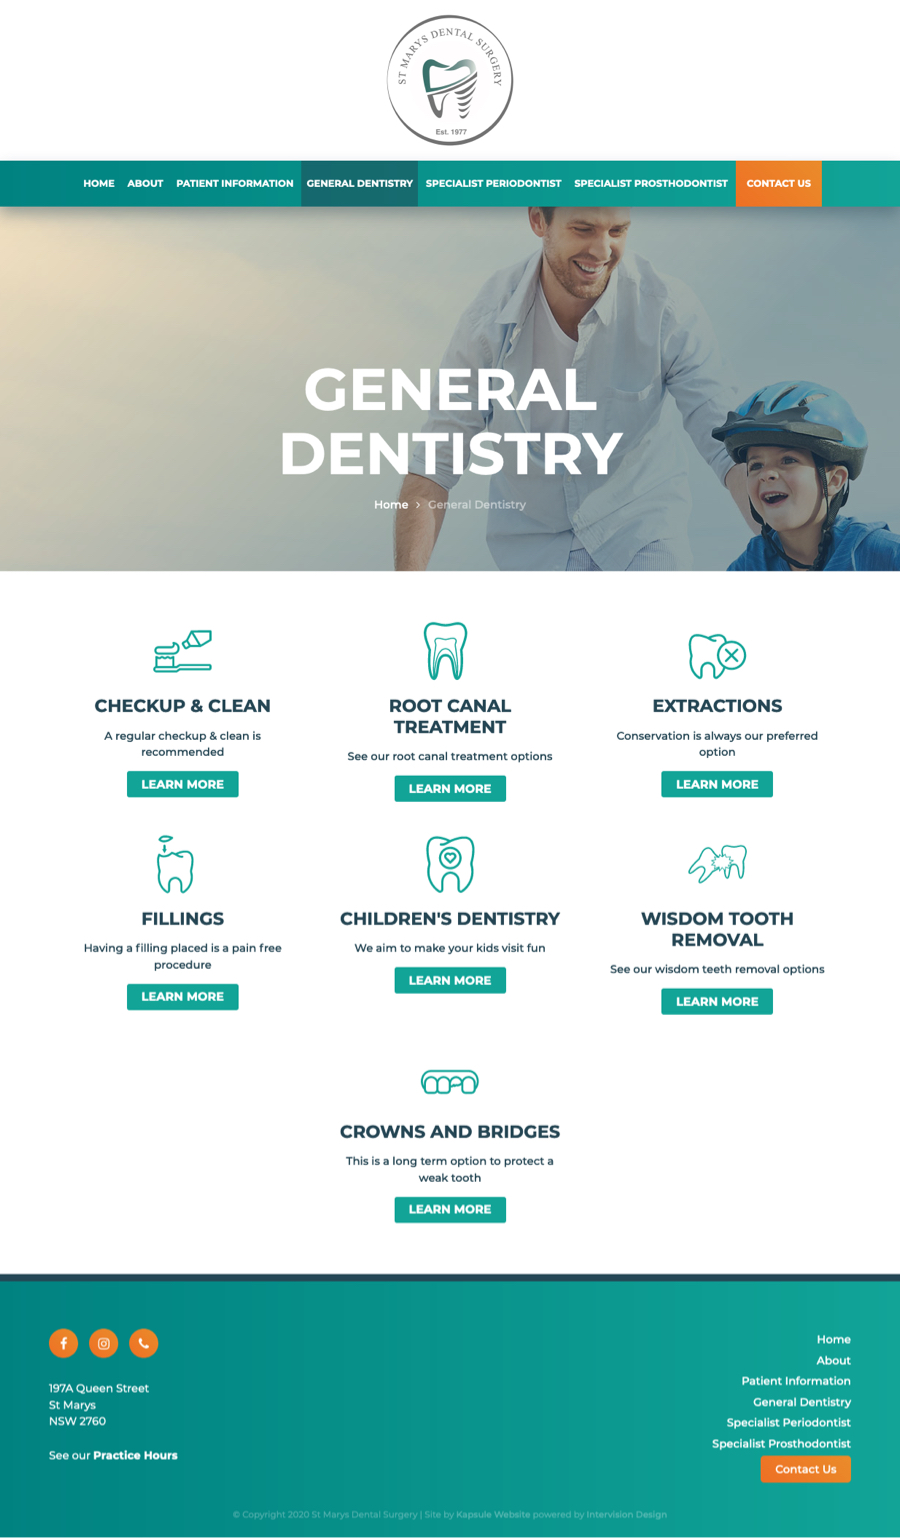 St Marys Dental Surgery by Kapsule Websites